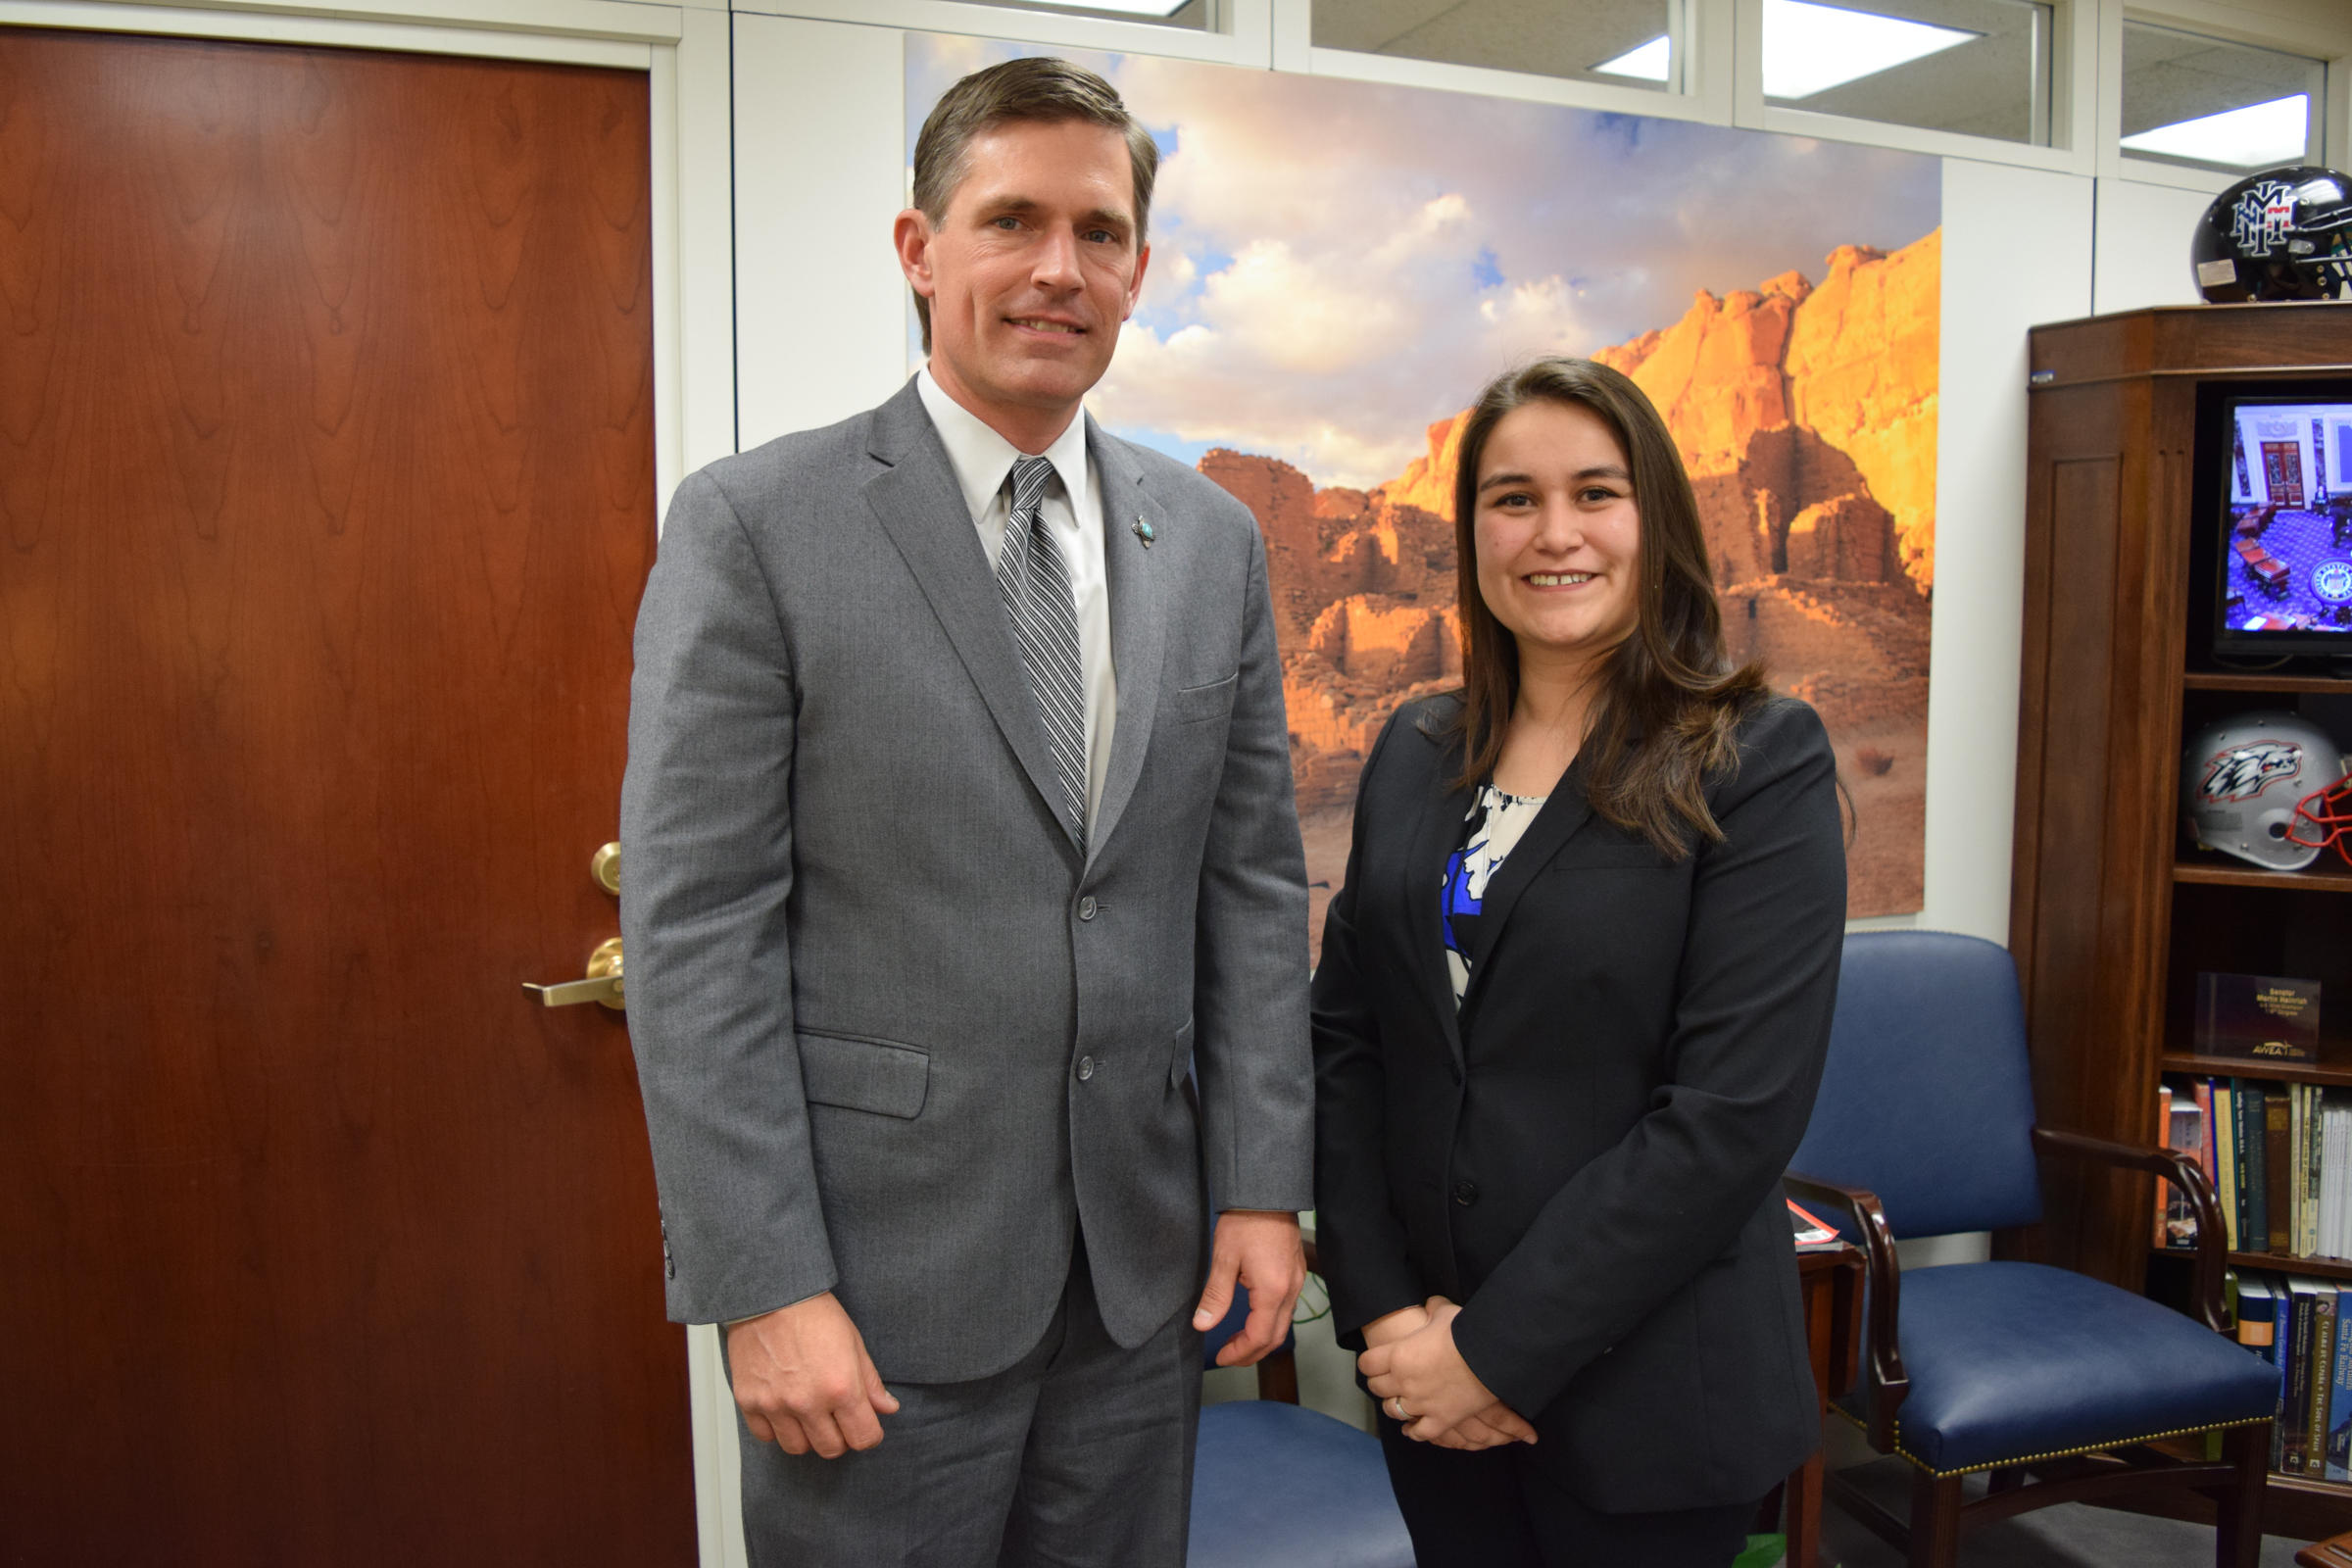 U.S. Senator Martin Heinrich and Ivonne Orozco-Acosta an Albuquerque resident and teacher who was just named New Mexico's 2018 Teacher of the